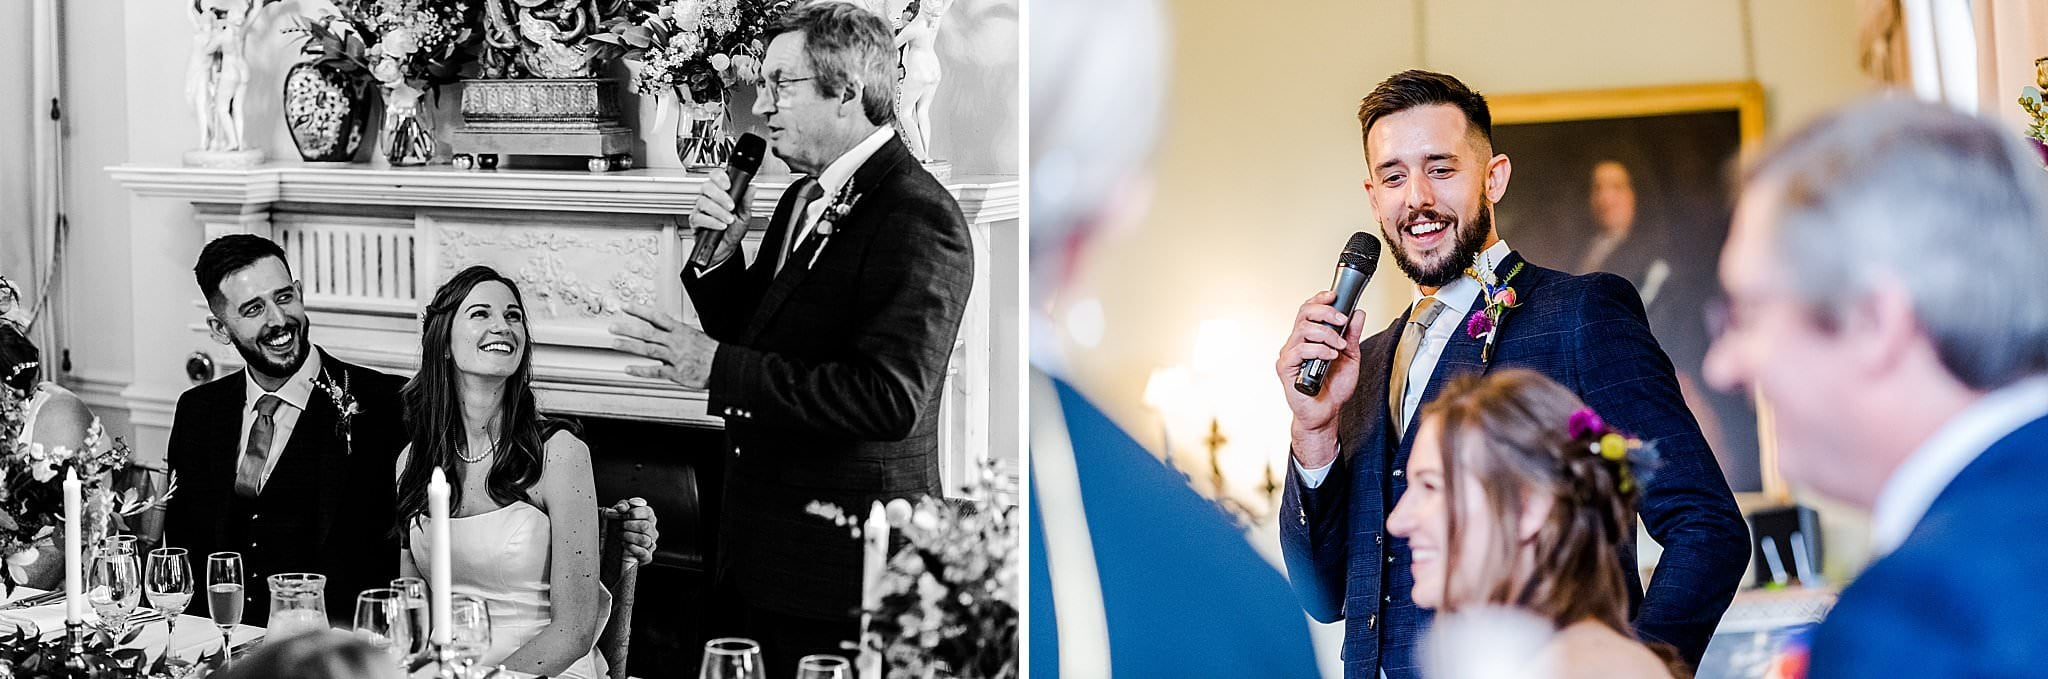 Wedding day speeches by the groom and bride's father at Prestwold Hall